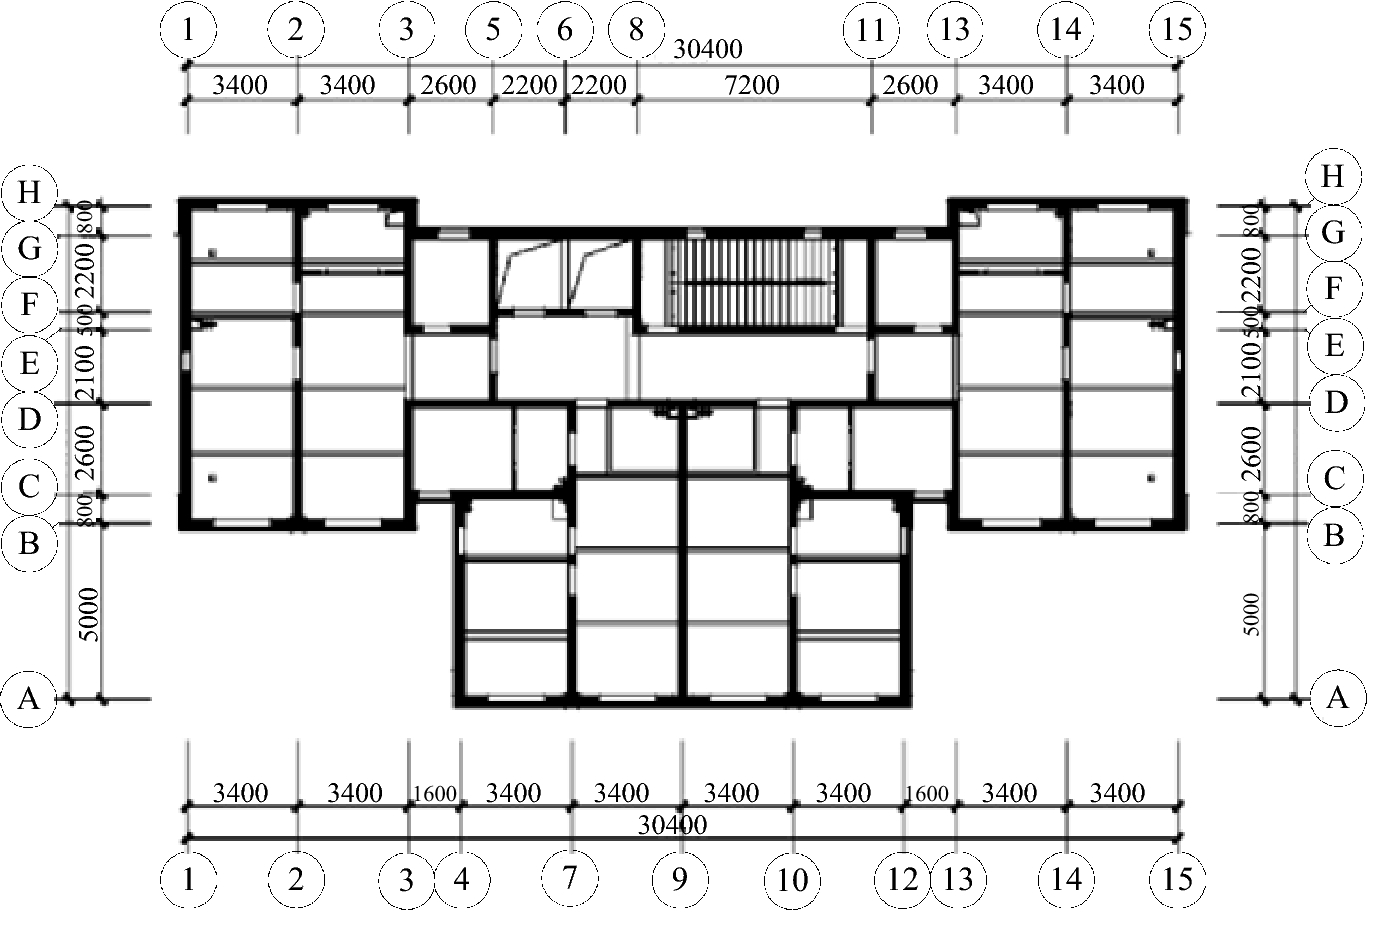 Research on 3D Simulation of Fabricated Building Structure